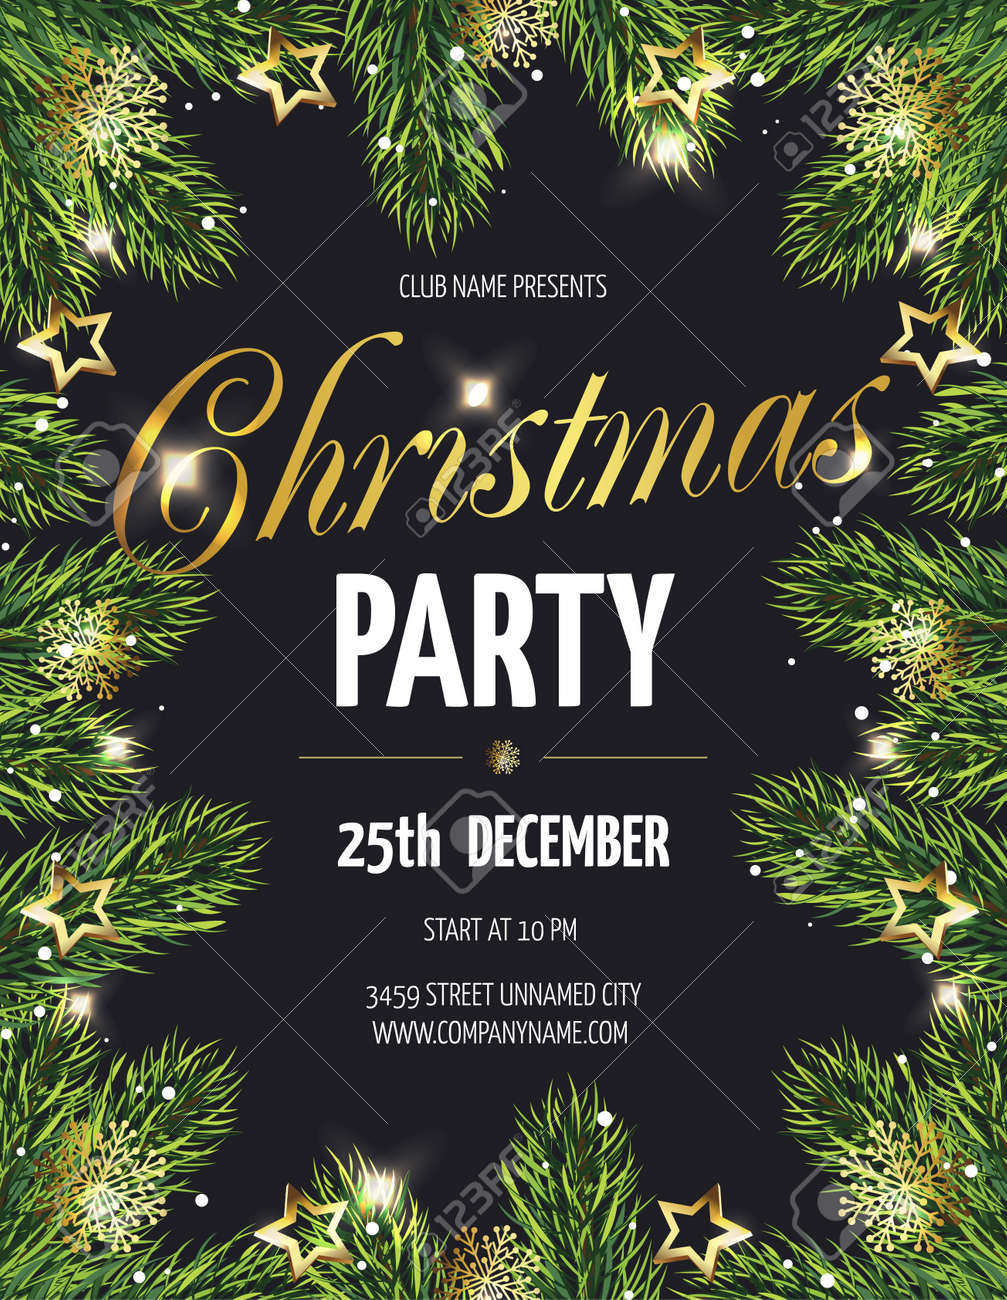 Ð¡hristmas party poster with fir branches. Vector illustration eps 10 - 91171935